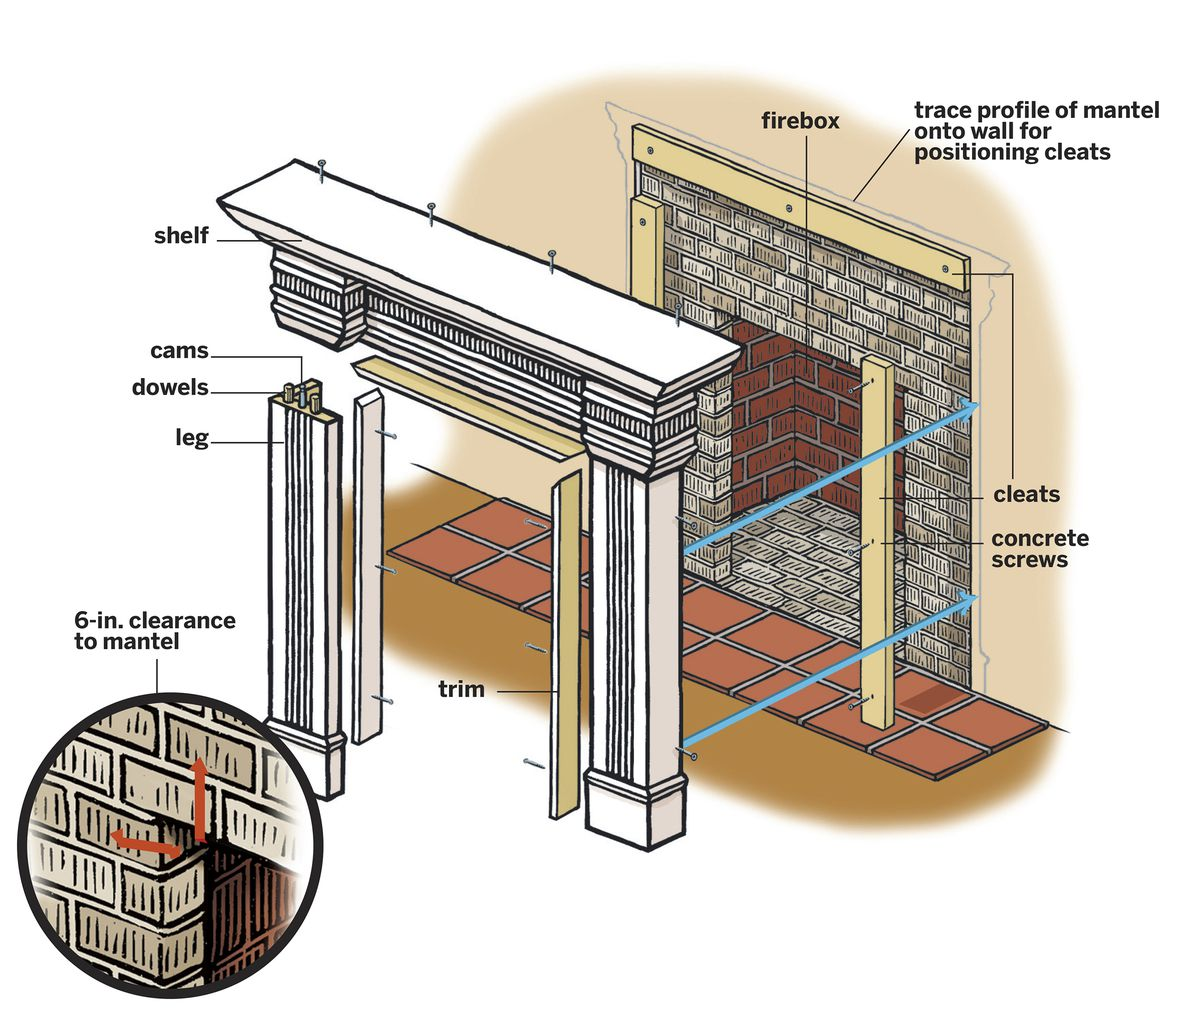 Fireplace Mantel Overview Diagram